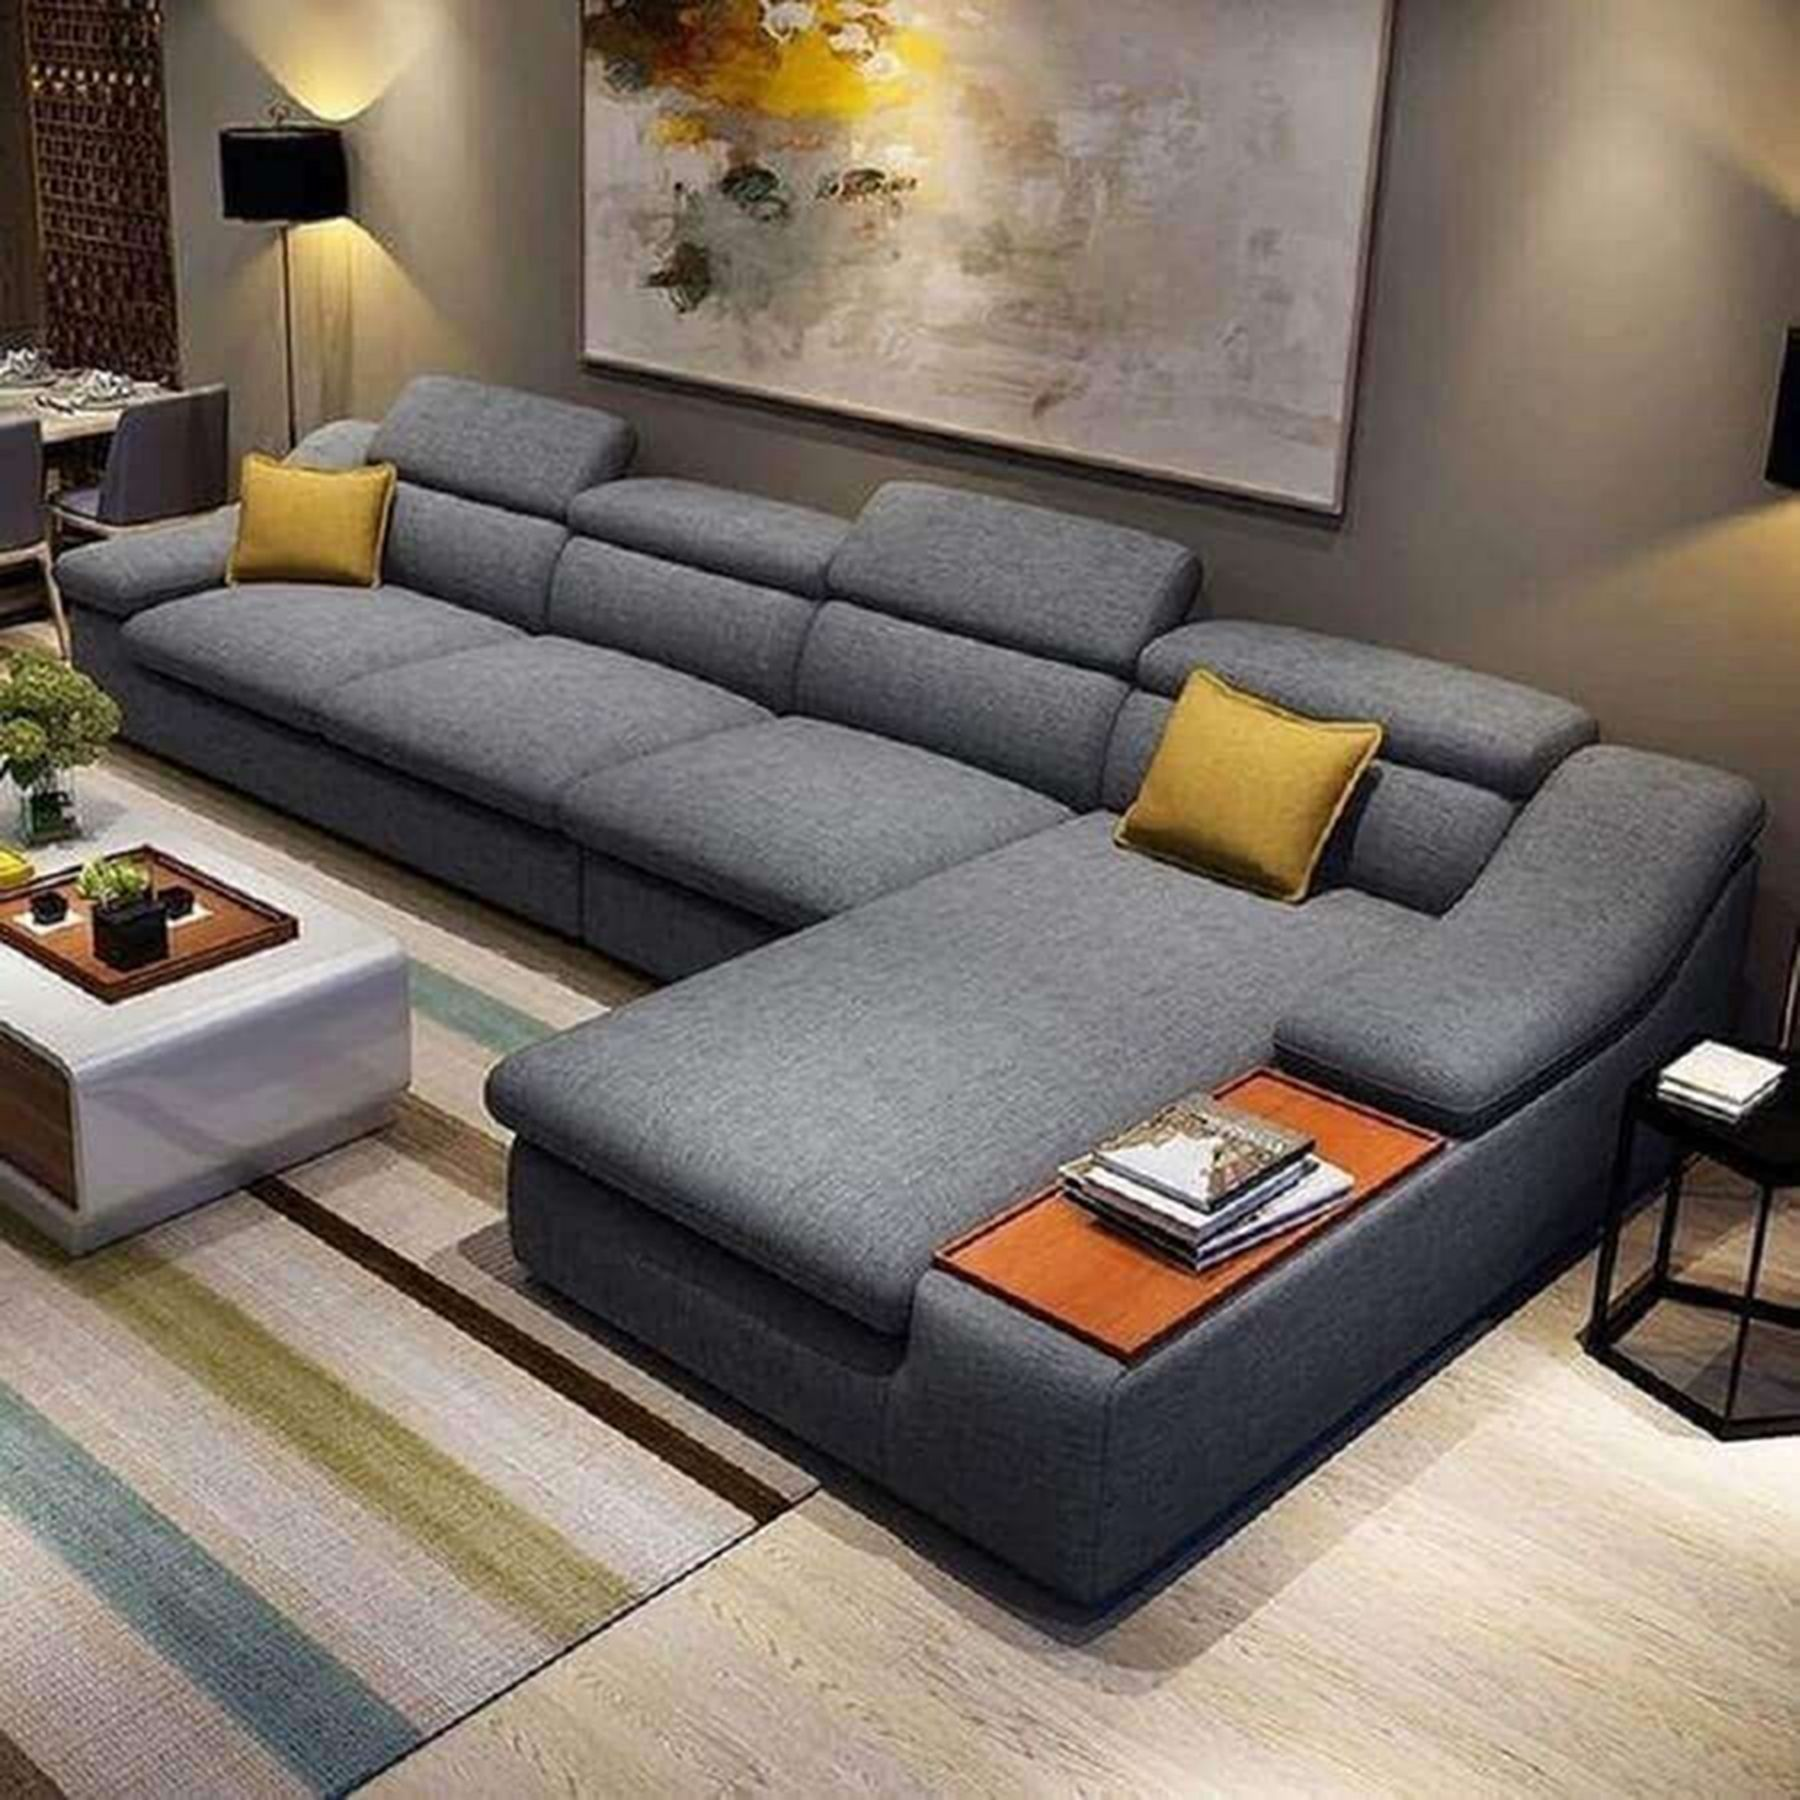 12 L Shaped Sofa Furniture Ideas For Awesome Modern Living Rooms 10 Furniture Design Living Room Living Room Sofa Design Room Furniture Design